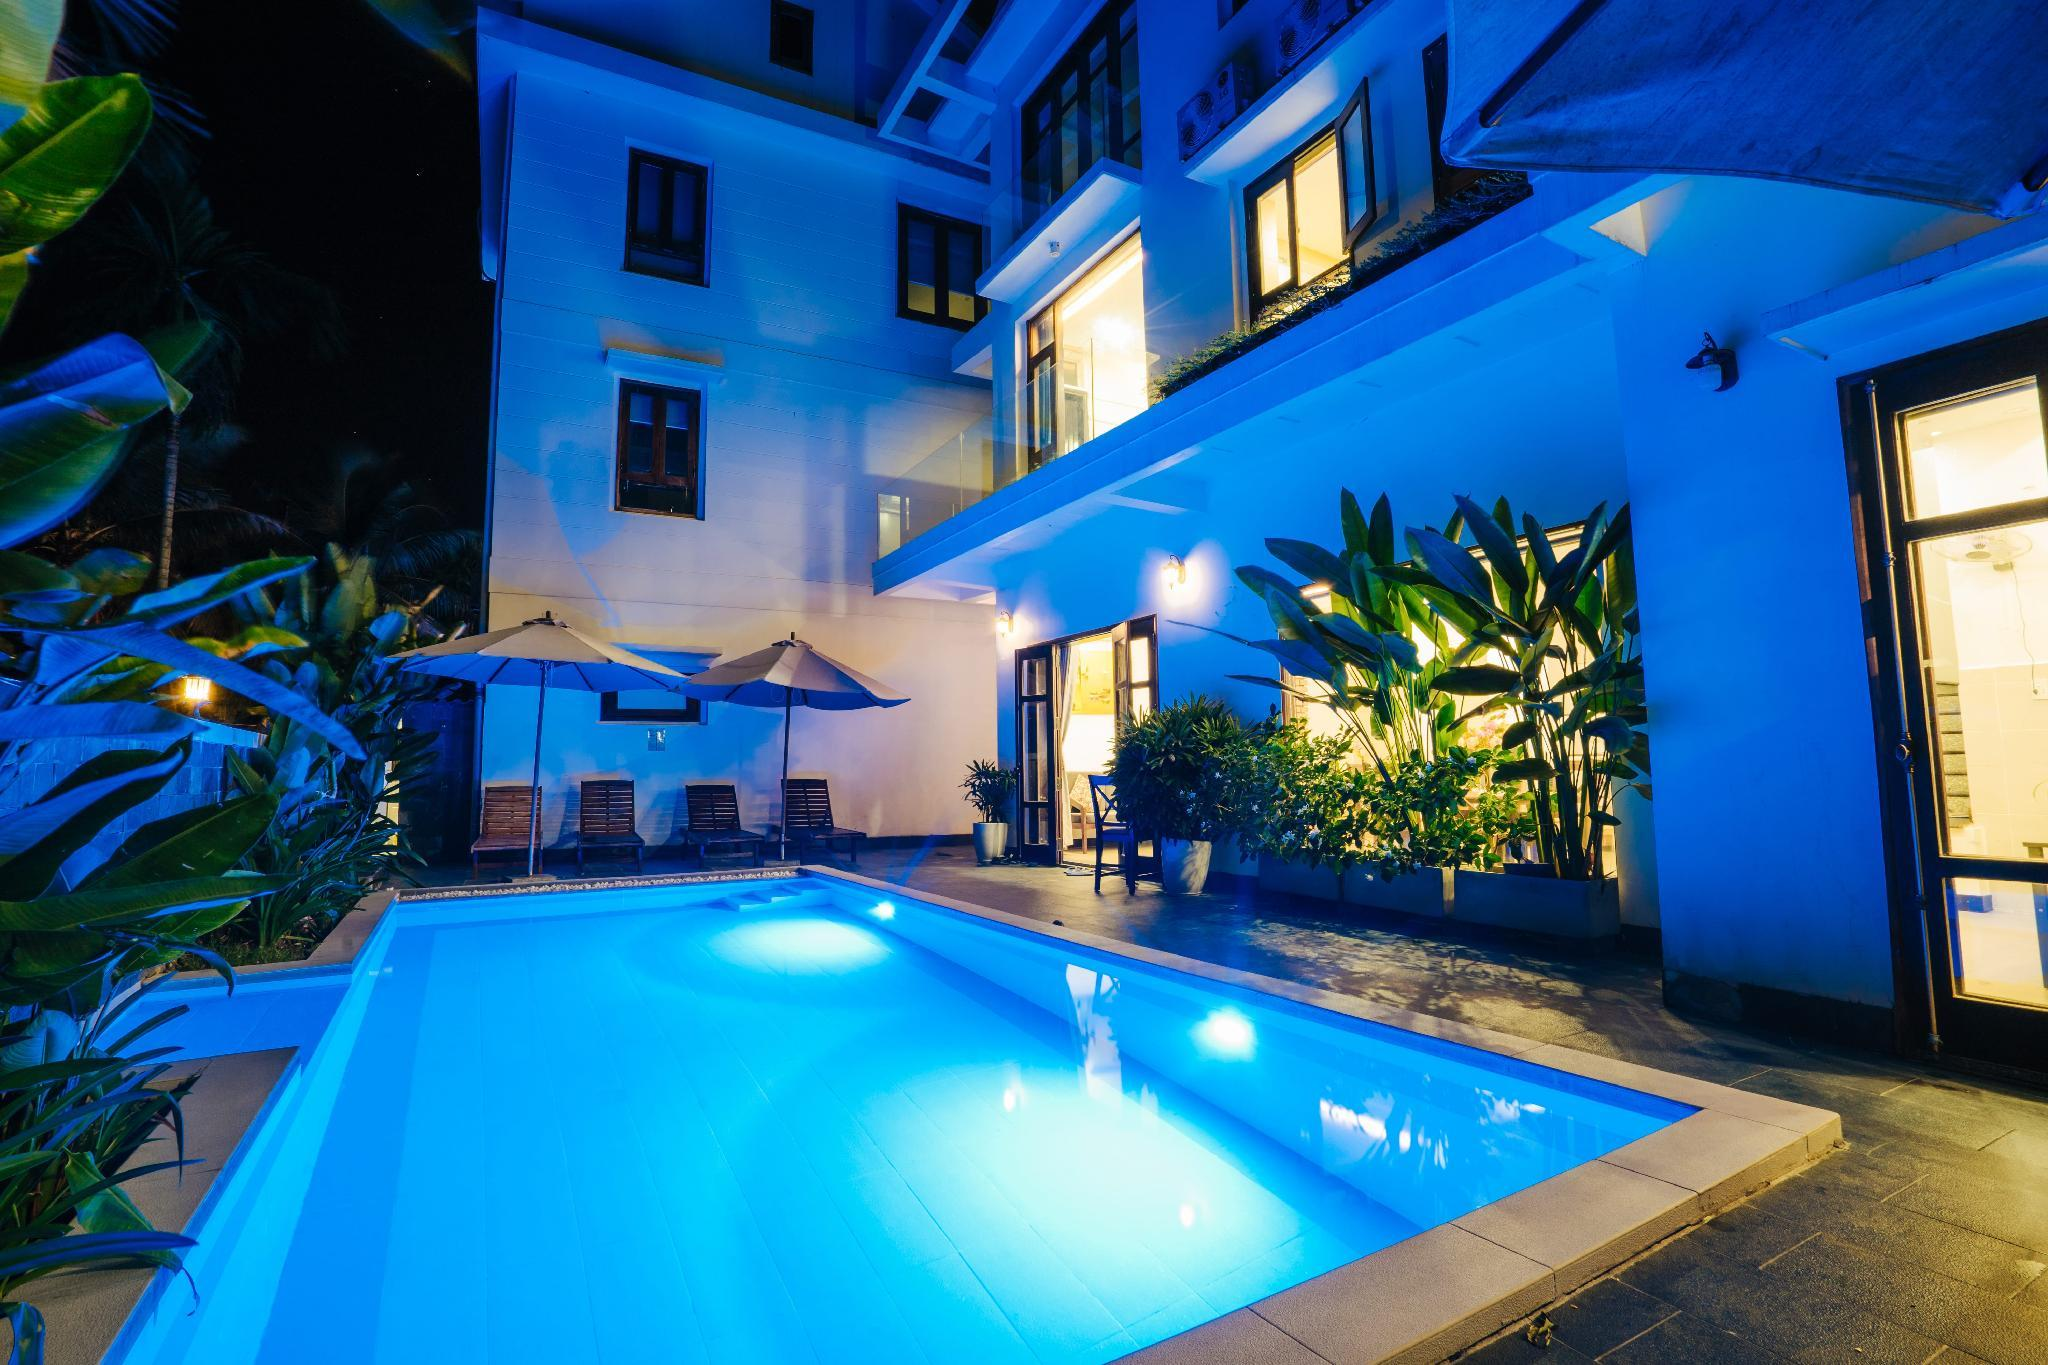 HOI AN 4 BEDROOM VILLA WITH PRIVATE POOL   BBQ